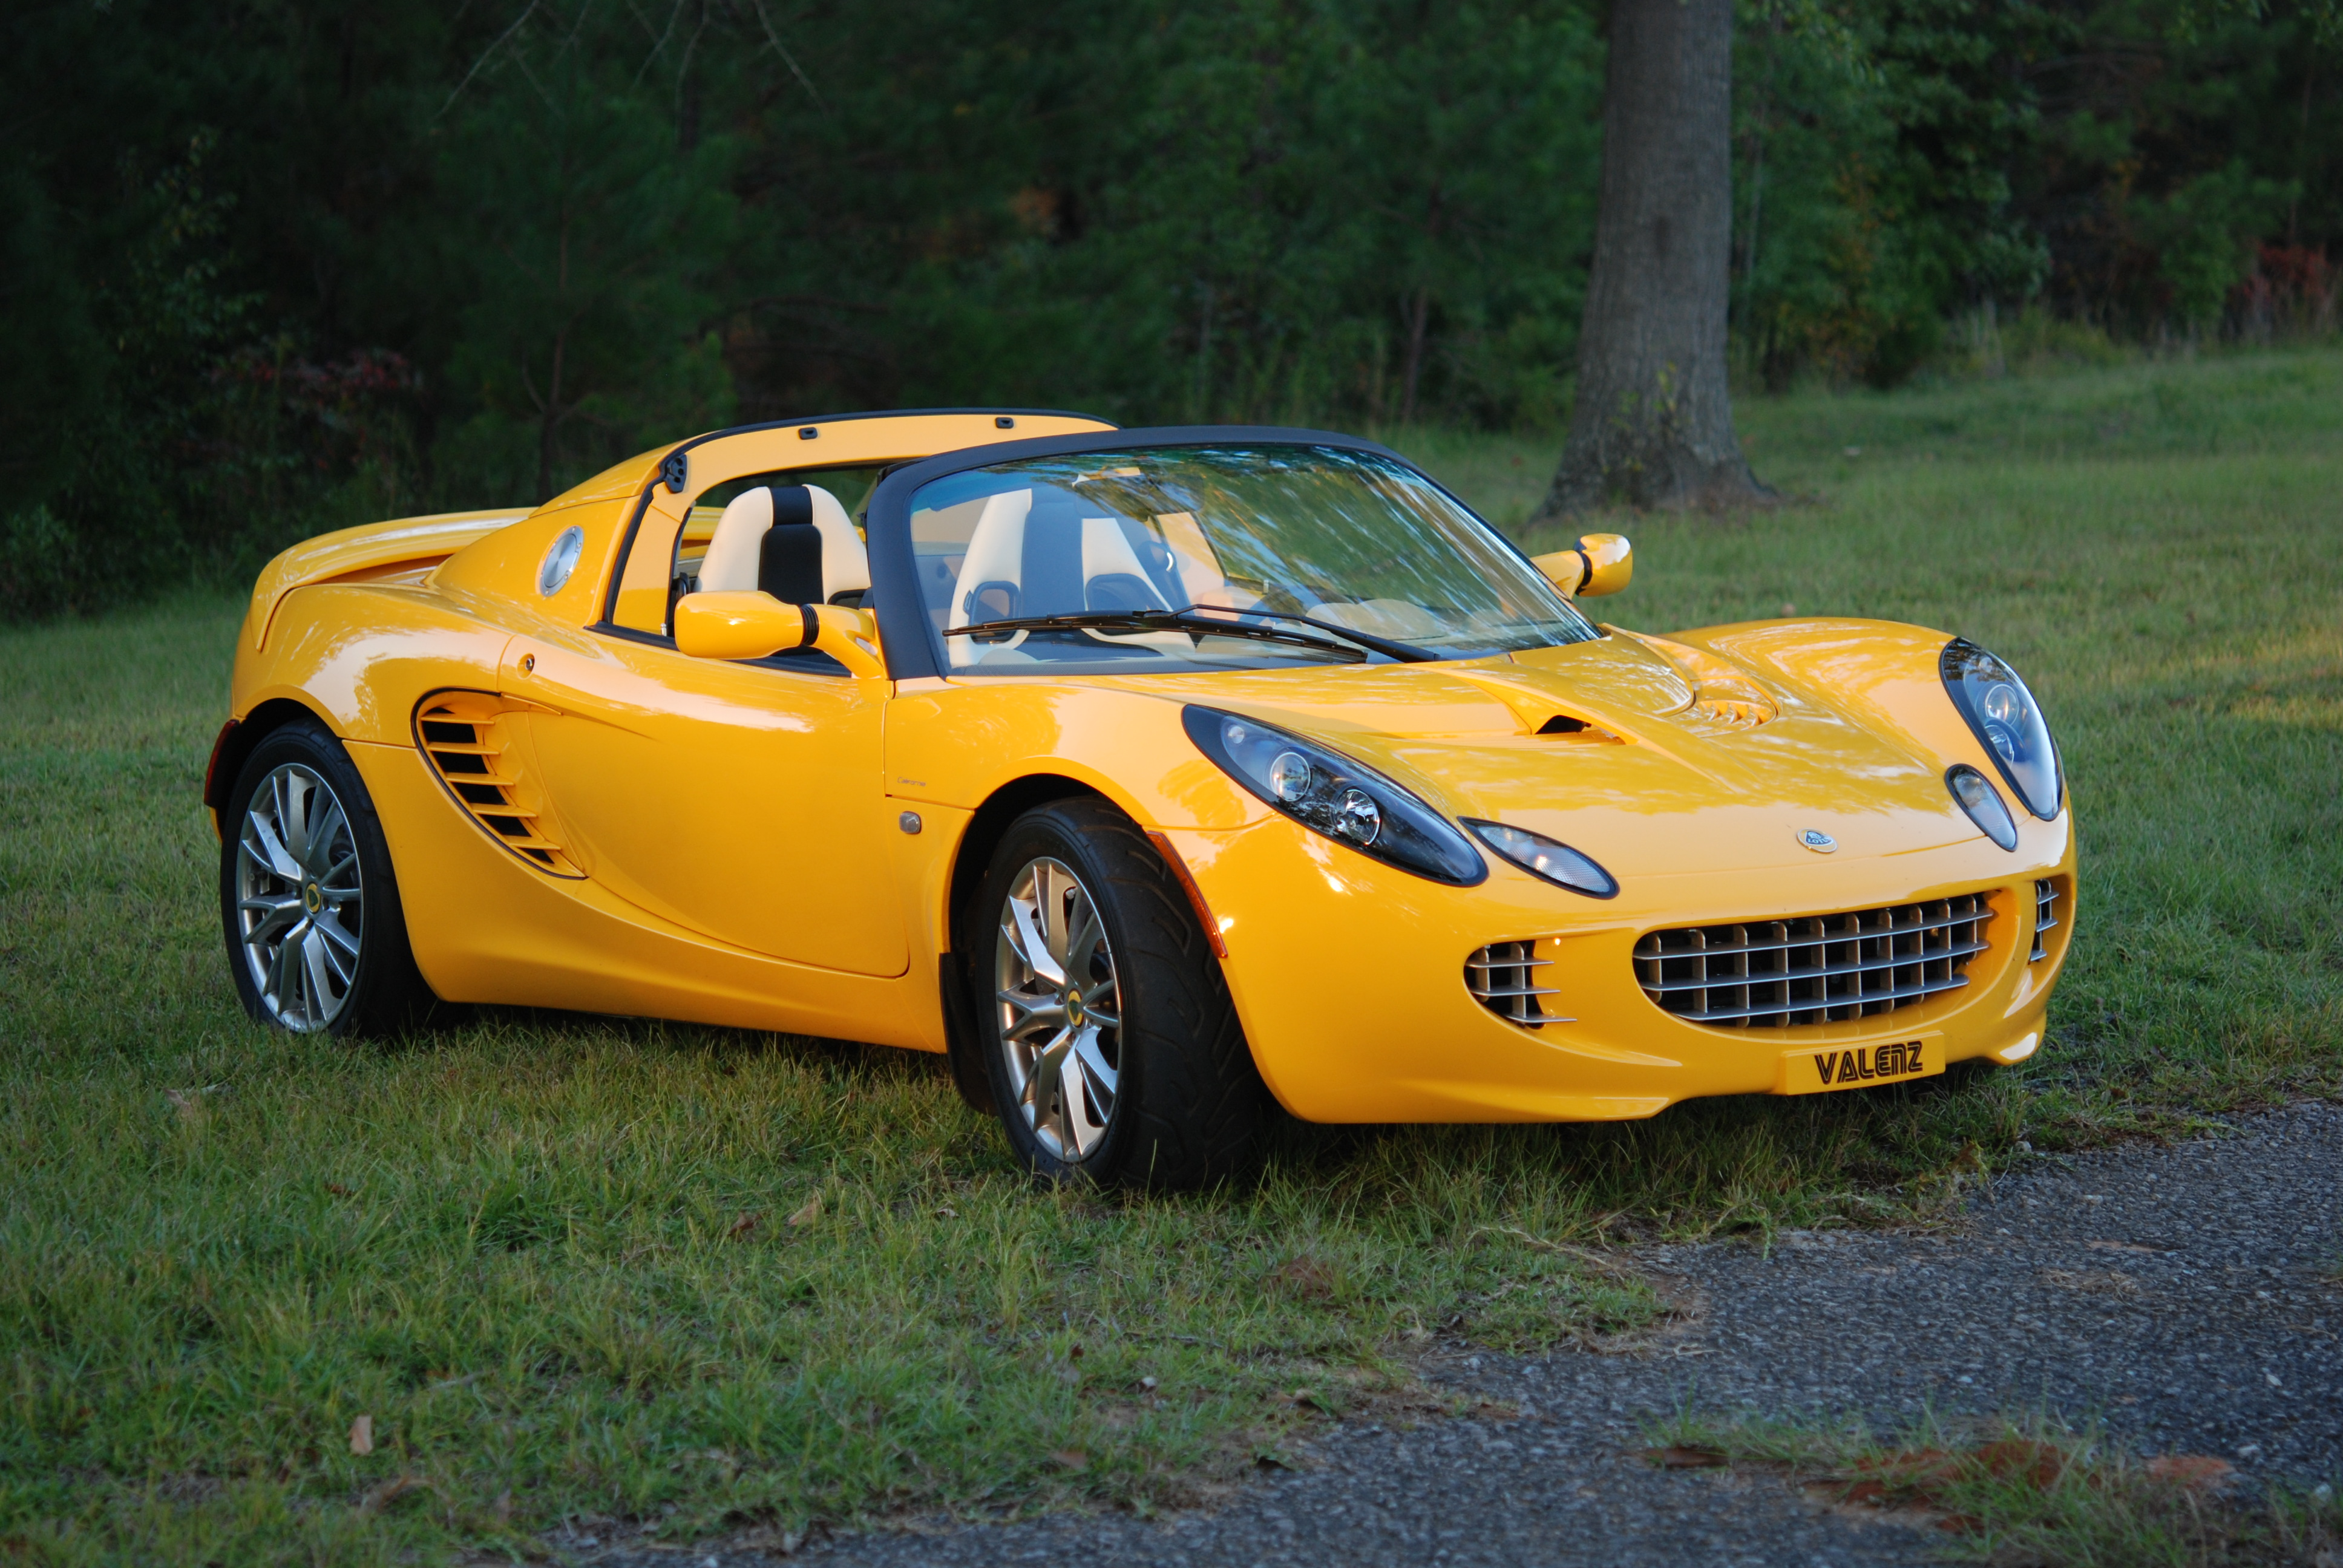 1999 Lotus Elise – pictures, information and specs - Auto-Database.com